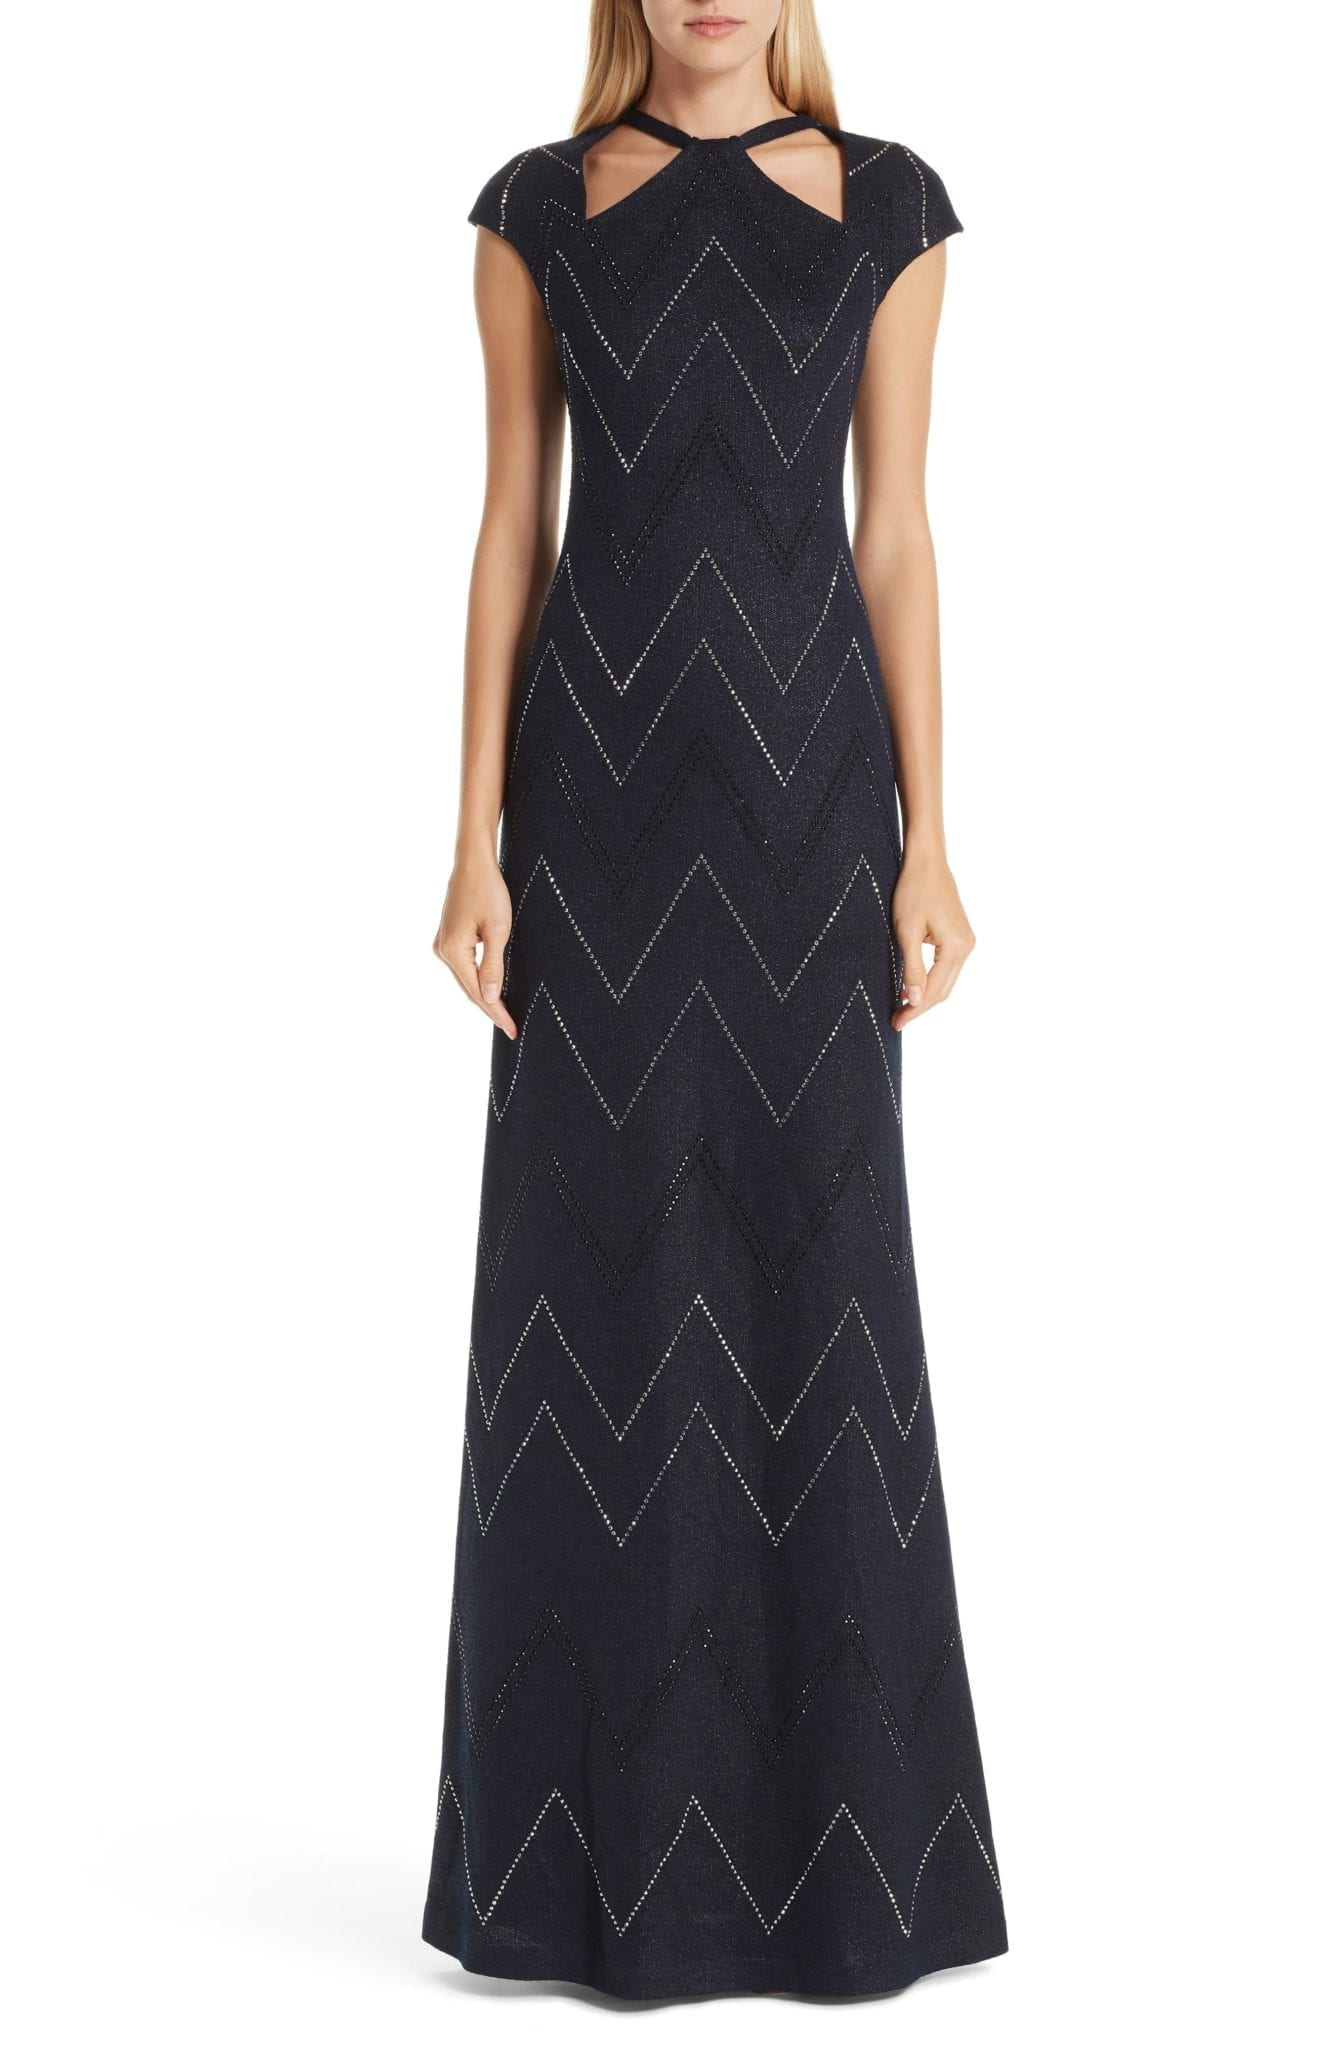 ST. JOHN COLLECTION Mod Metallic Knit Navy Gown